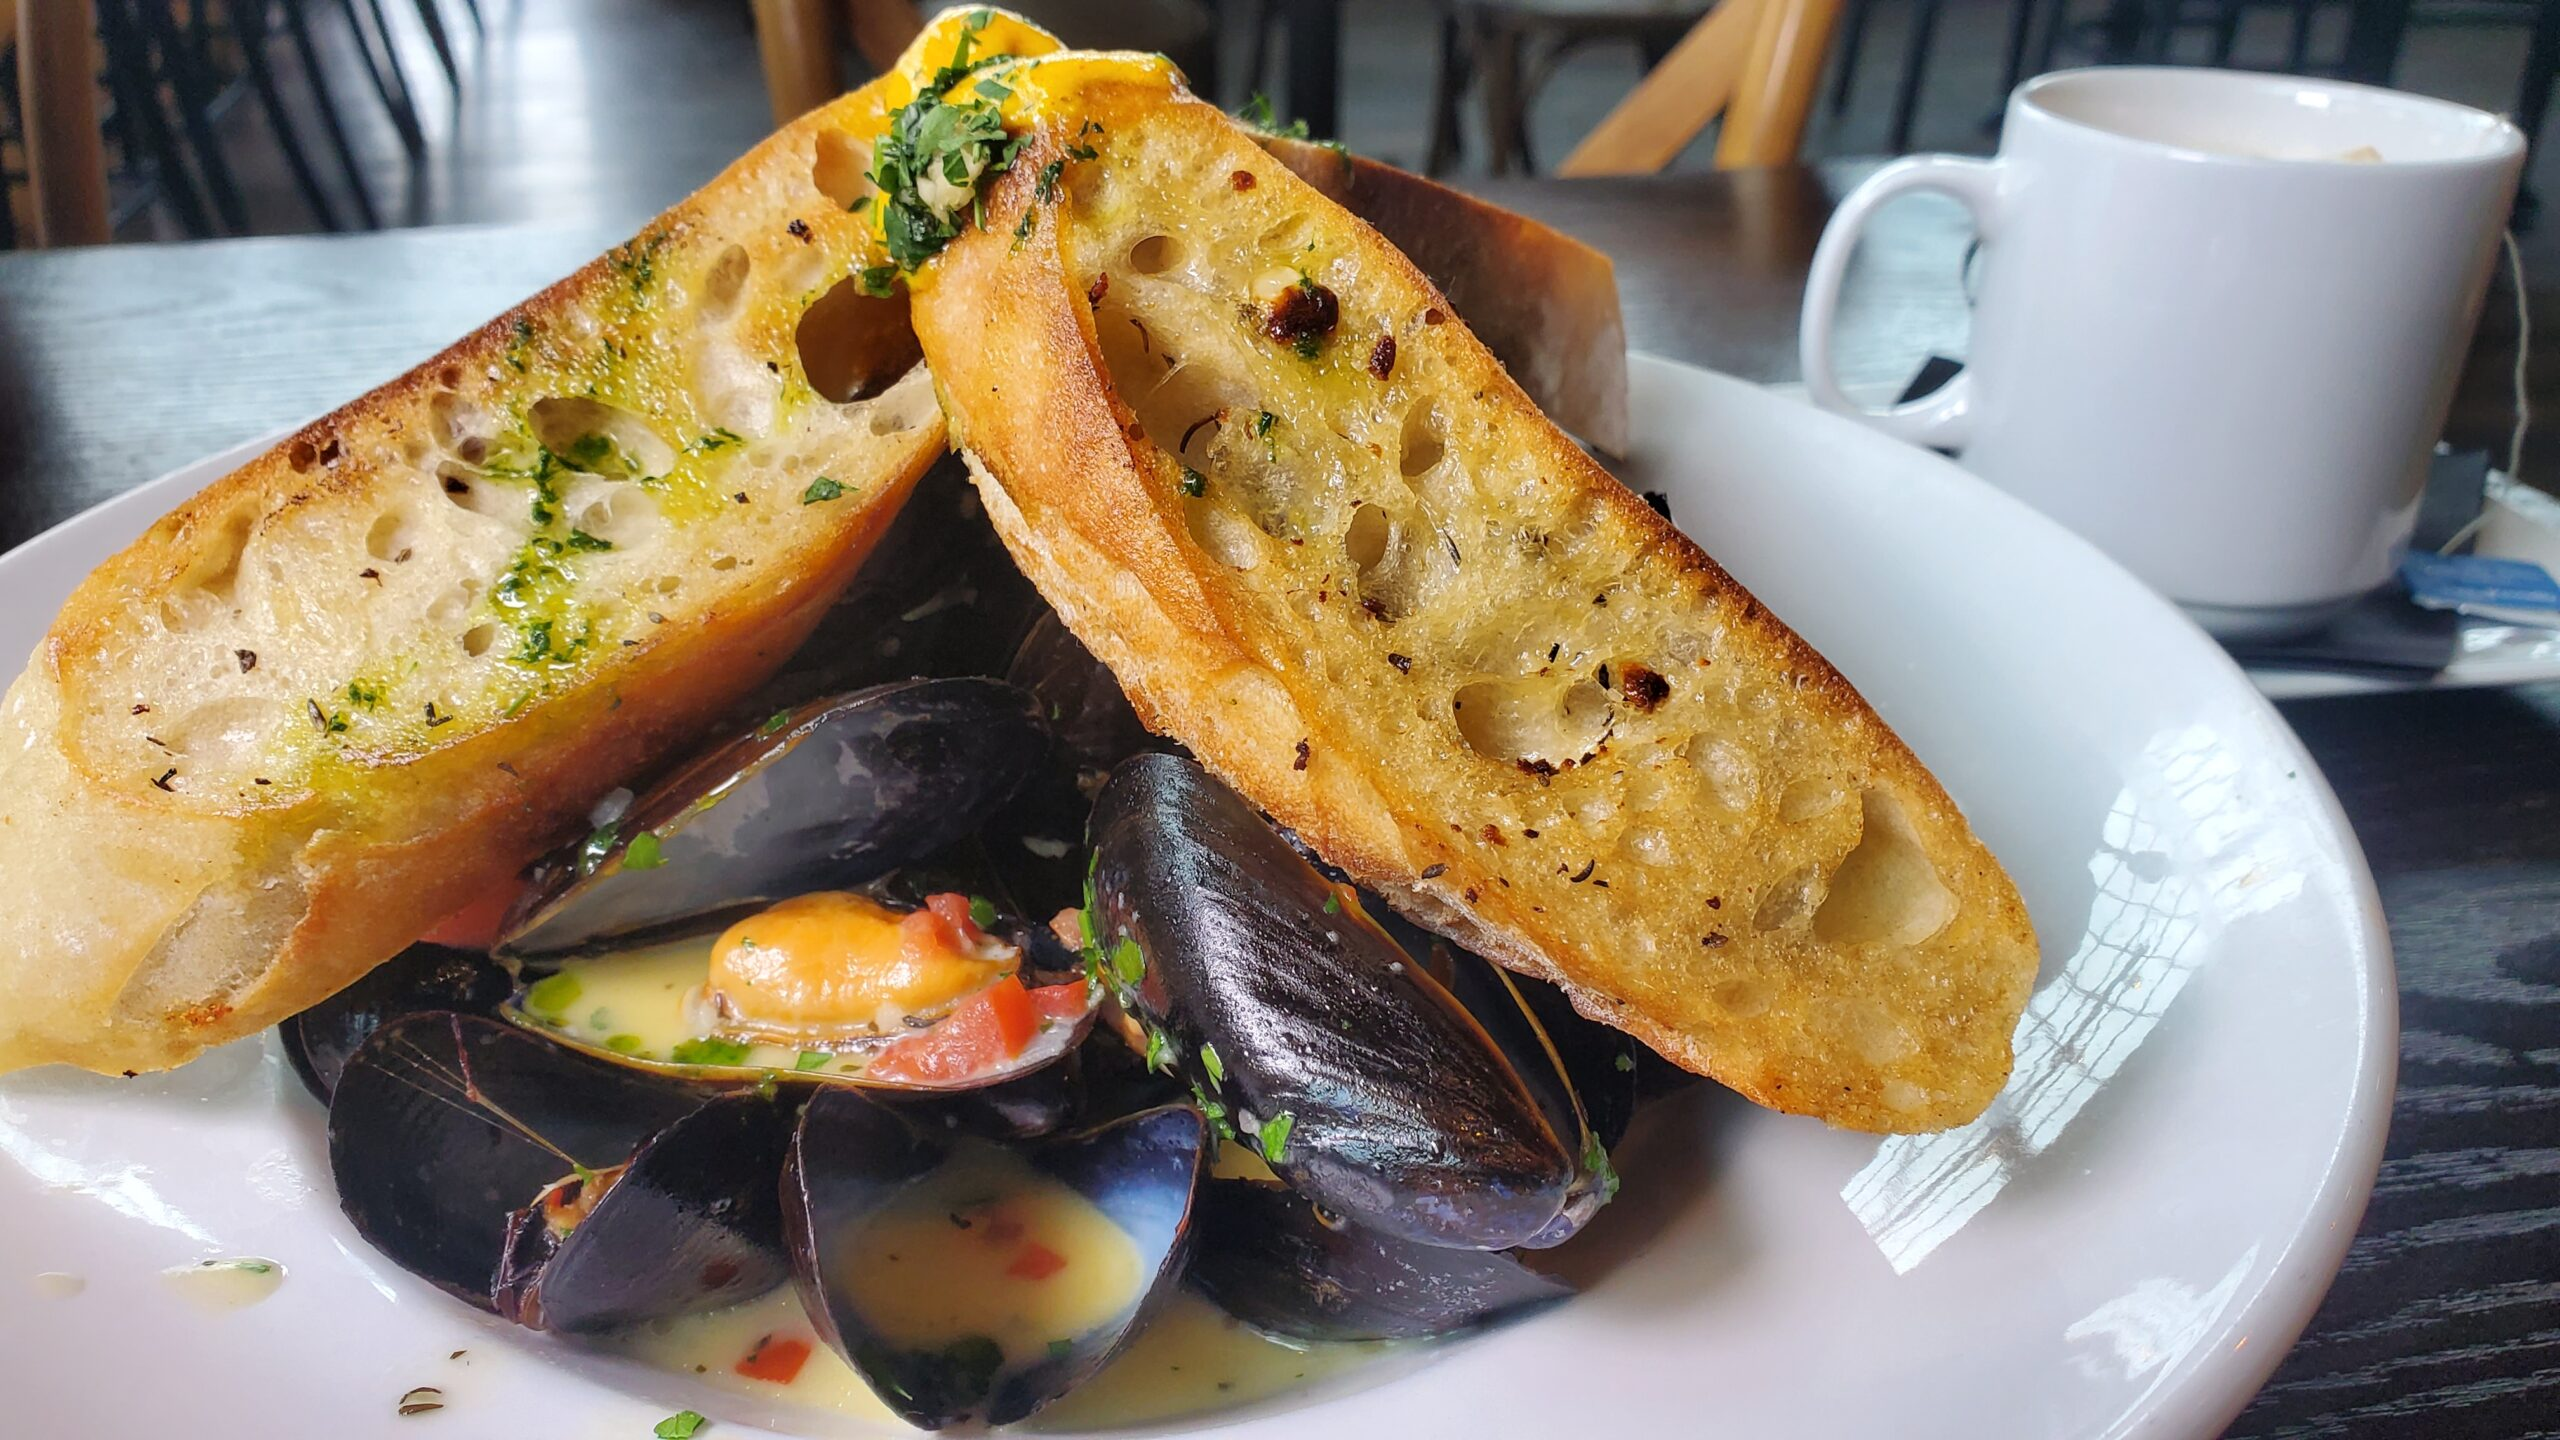 P.E.I Mussels by Local On North